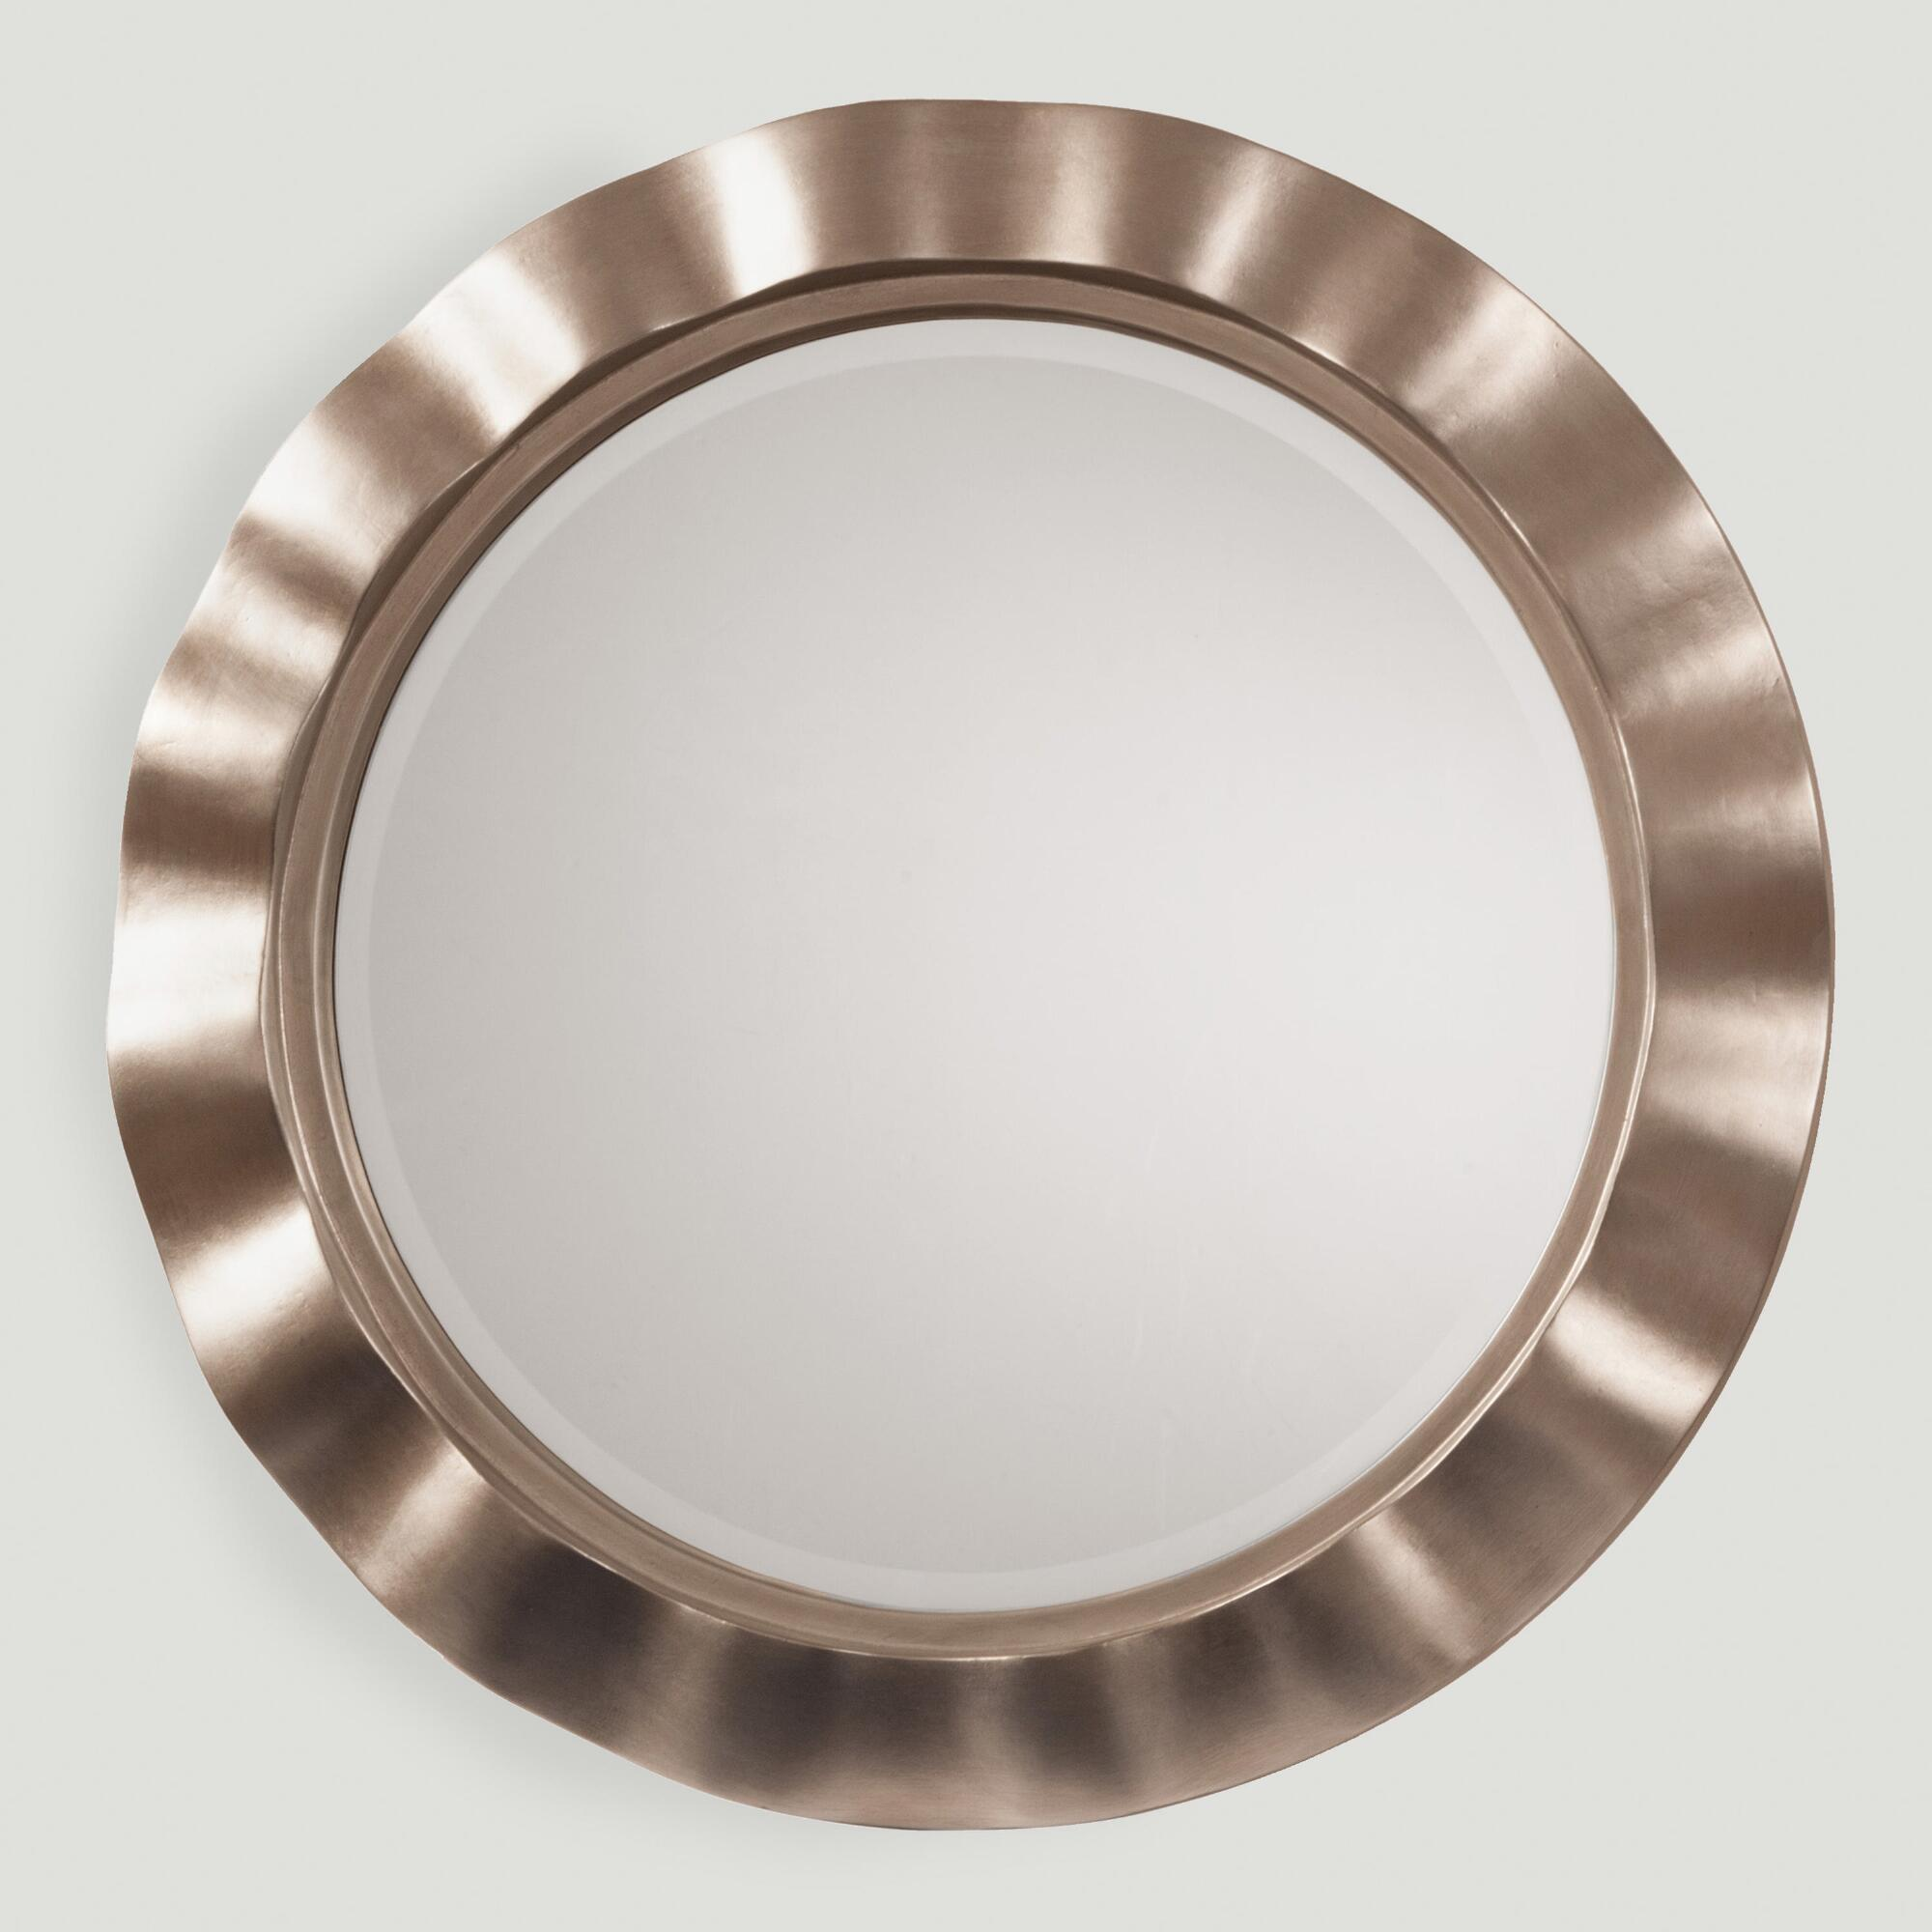 Silver metal wavy round mirror world market for Round mirror